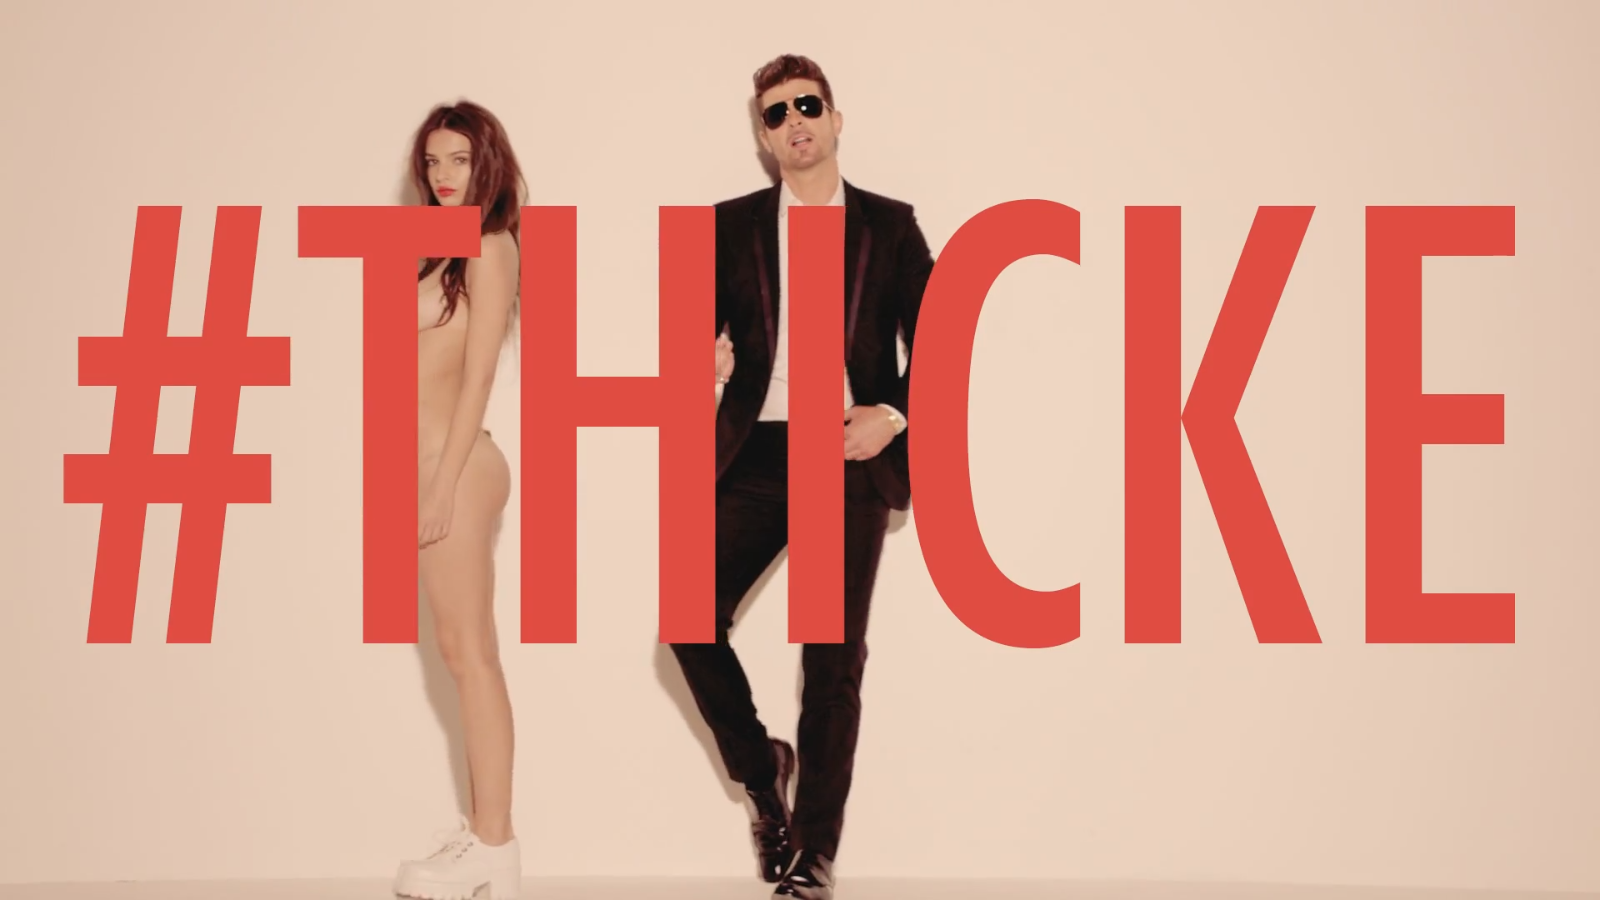 robin-thicke-blurred-lines_unrated-01